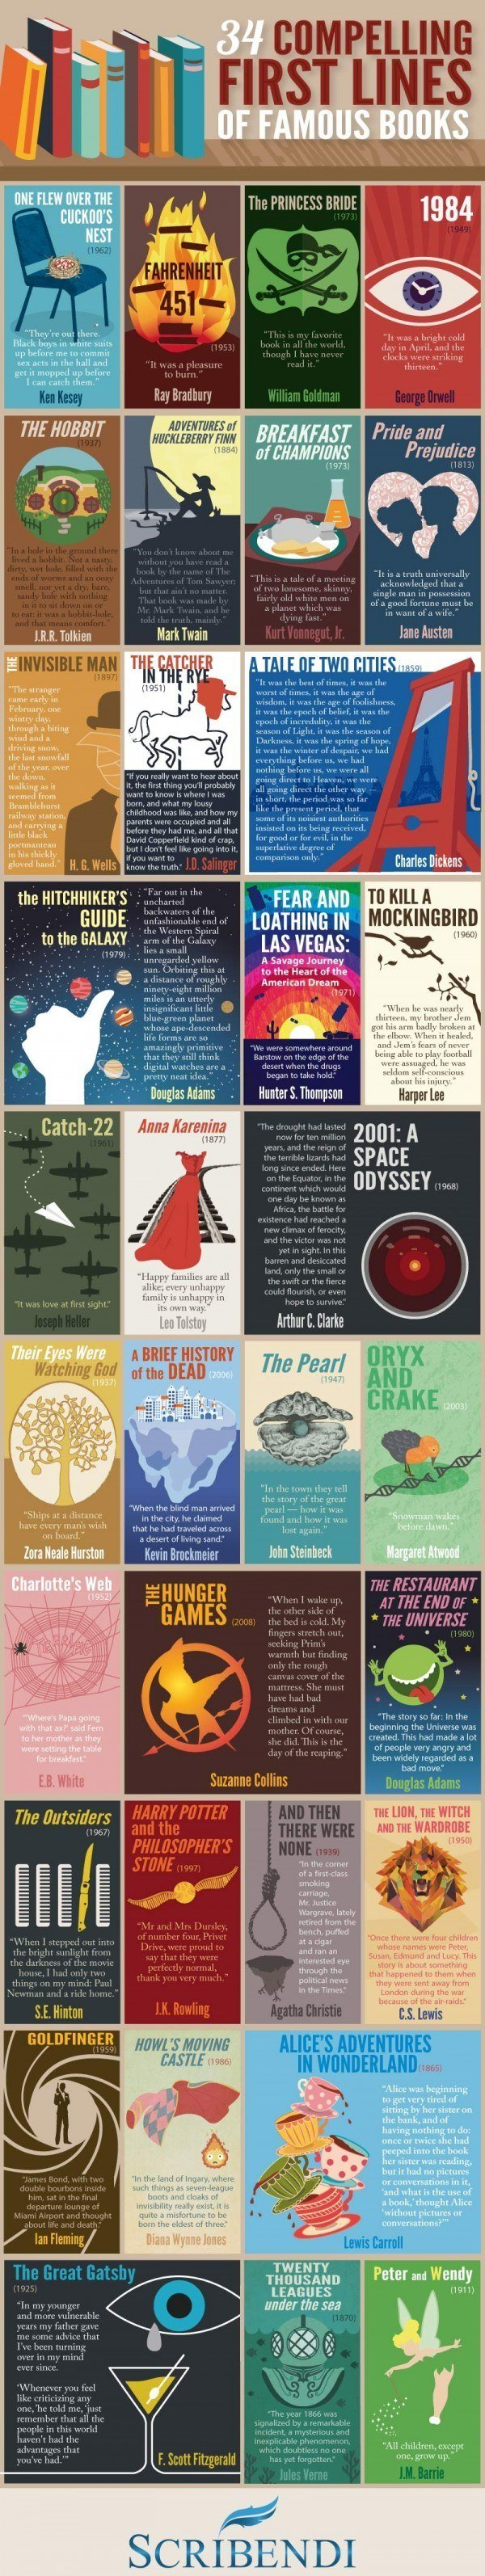 Scribendi: 34 Compelling First Lines of Famous Books